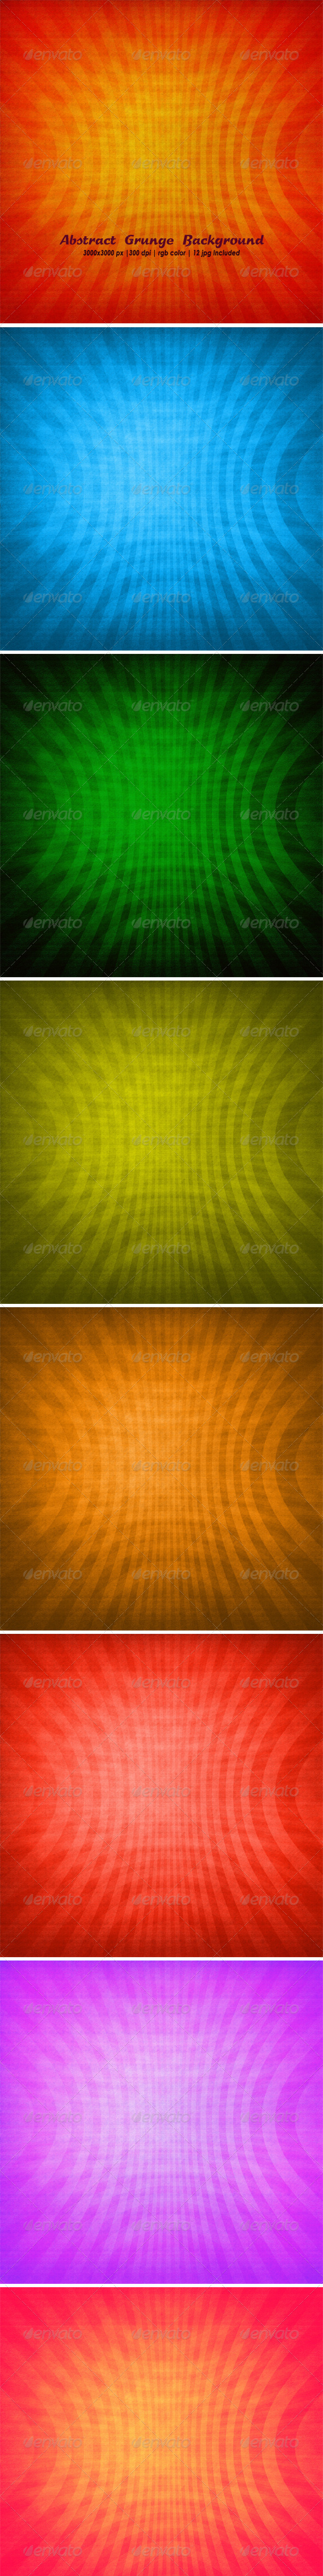 Abstract Grunge Background Set  - Backgrounds Graphics